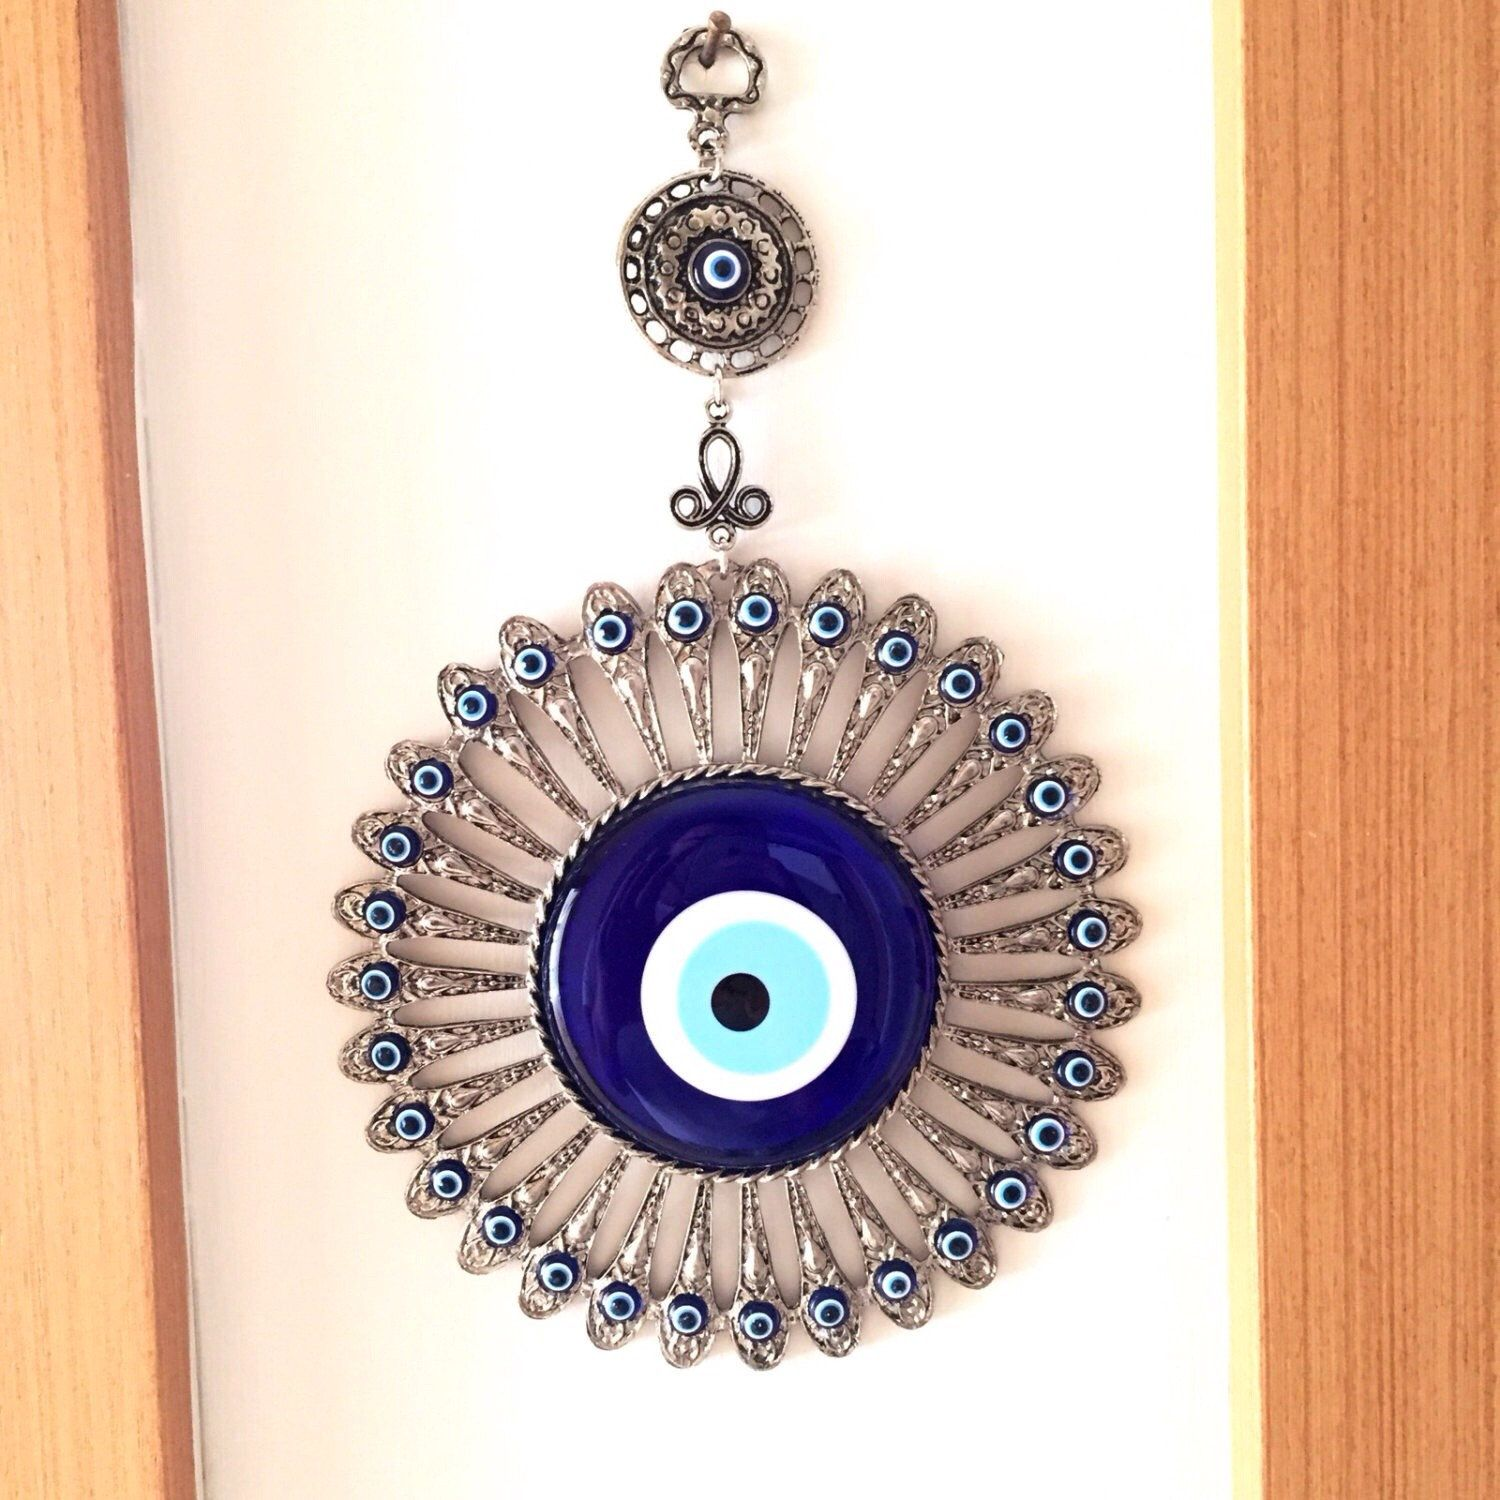 Blue glass evil eye wall hanging metal finecut antique magic blue glass evil eye wall hanging metal finecut antique magic evil eye turkish amipublicfo Gallery